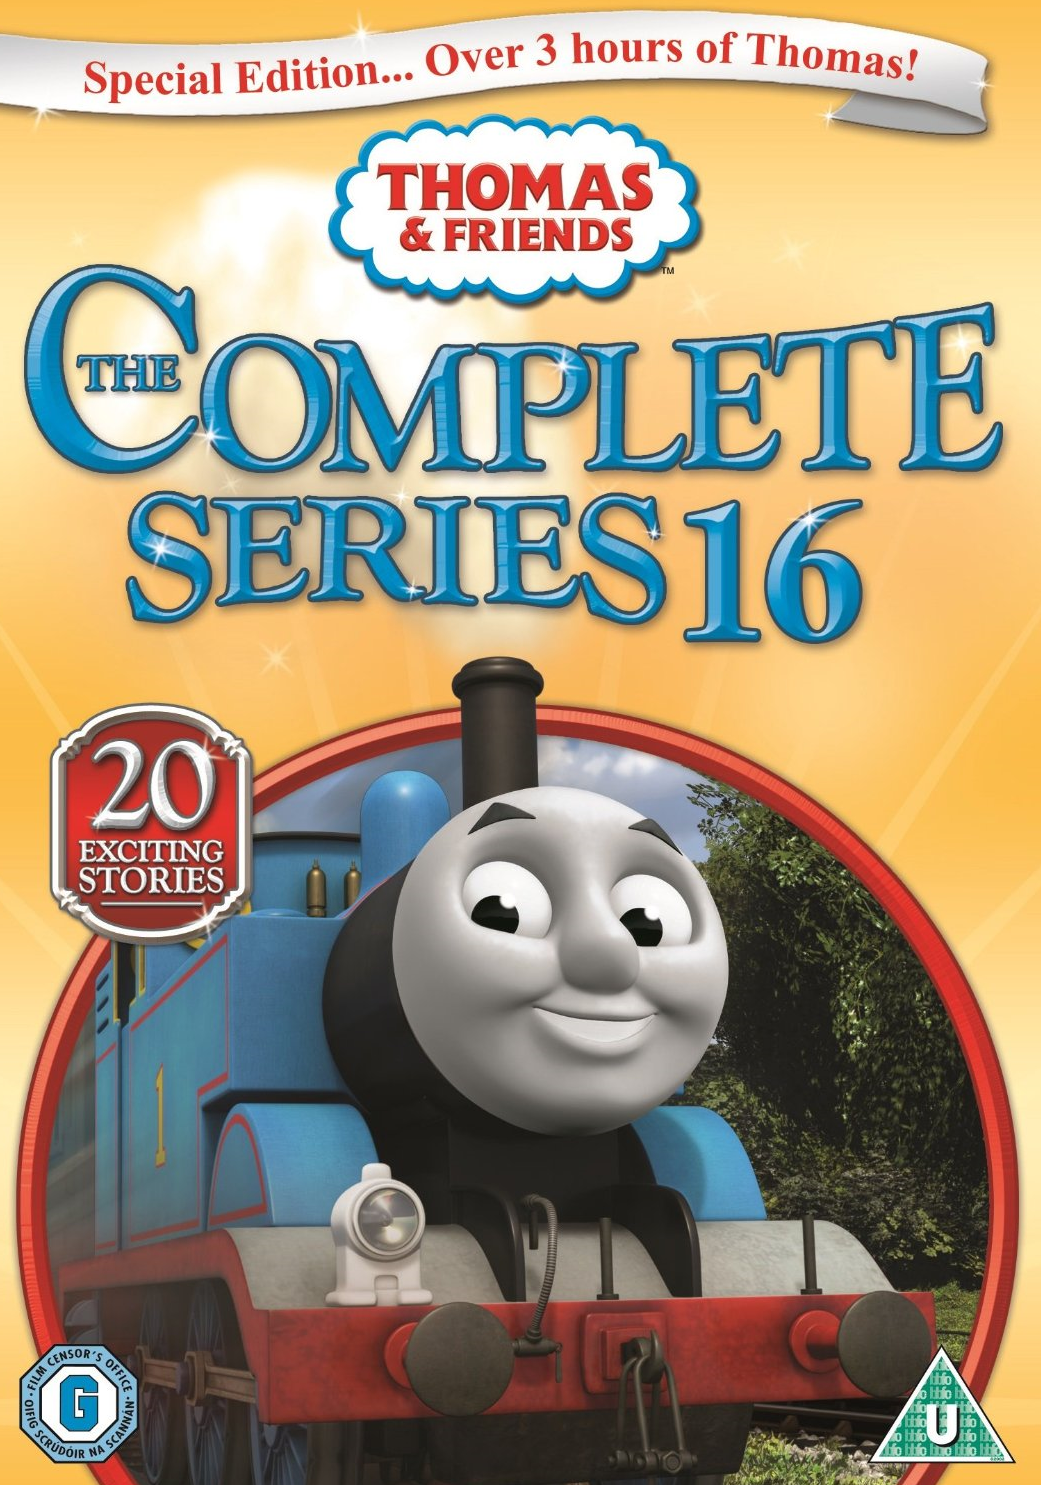 The Complete Series 16